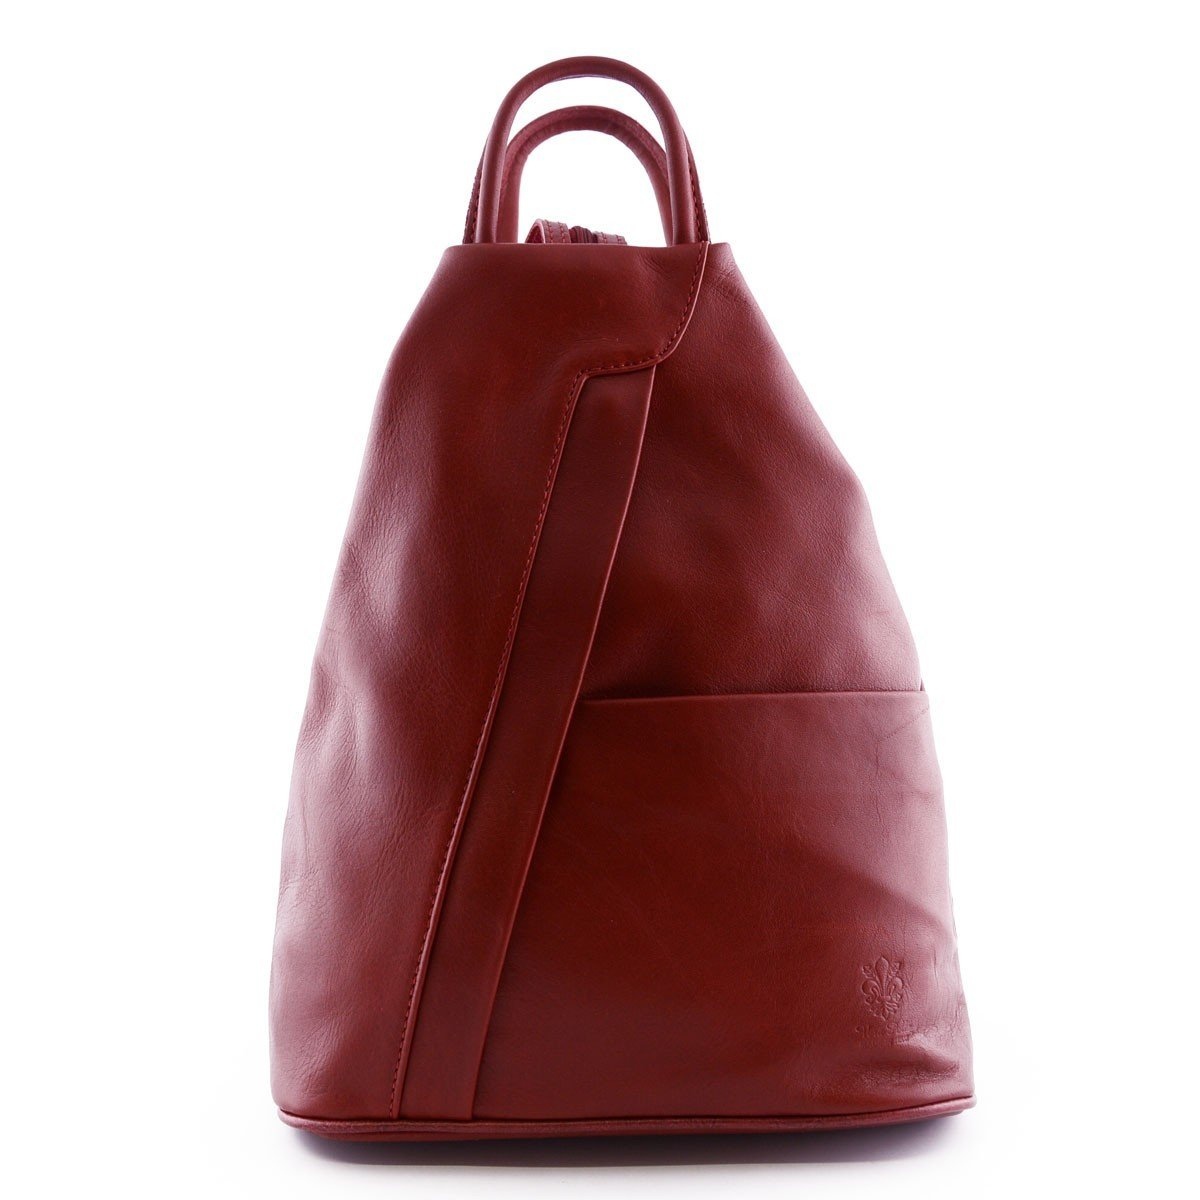 Made In Italy Woman Leather Backpack Color Red - Backpack   B014T6IXRC